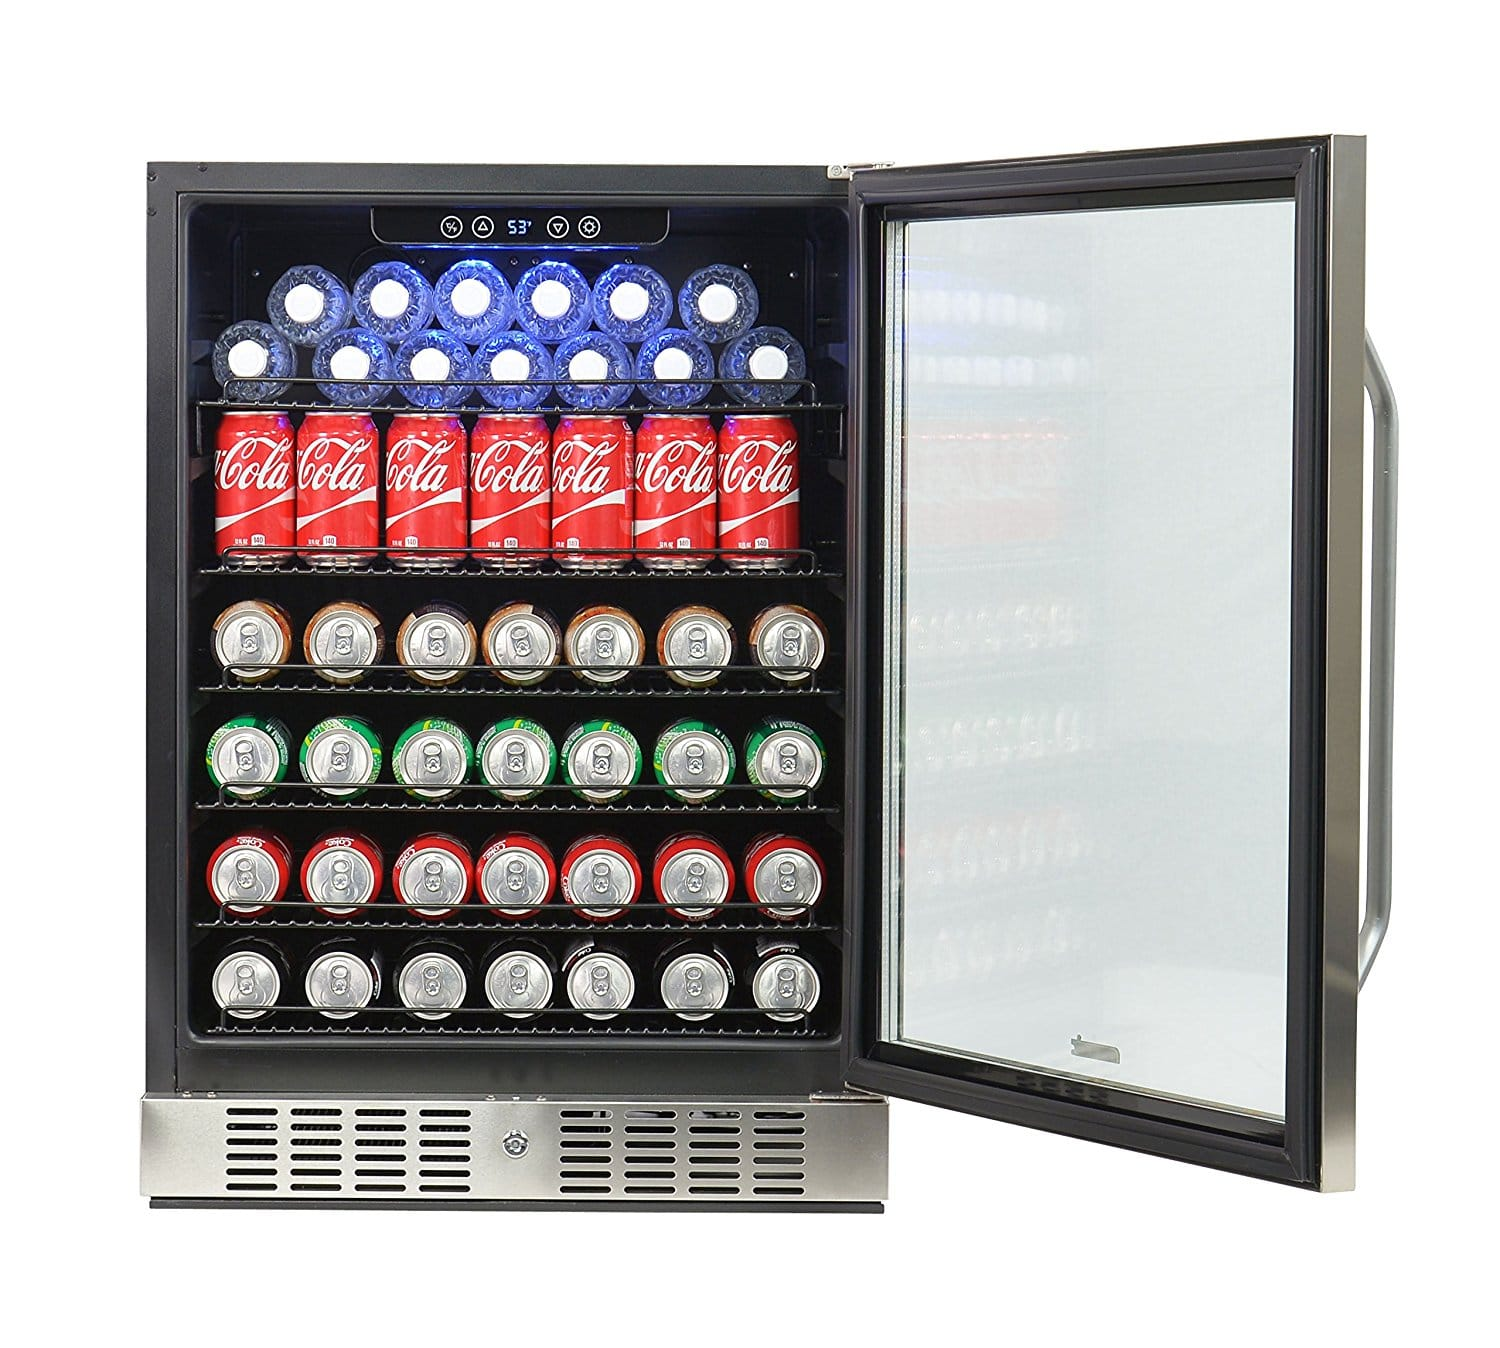 NewAir ABR 1770 177 Can Deluxe Beverage Cooler U2013 Best Big Undercounter  Beverage Refrigerator Fit 177 Cans